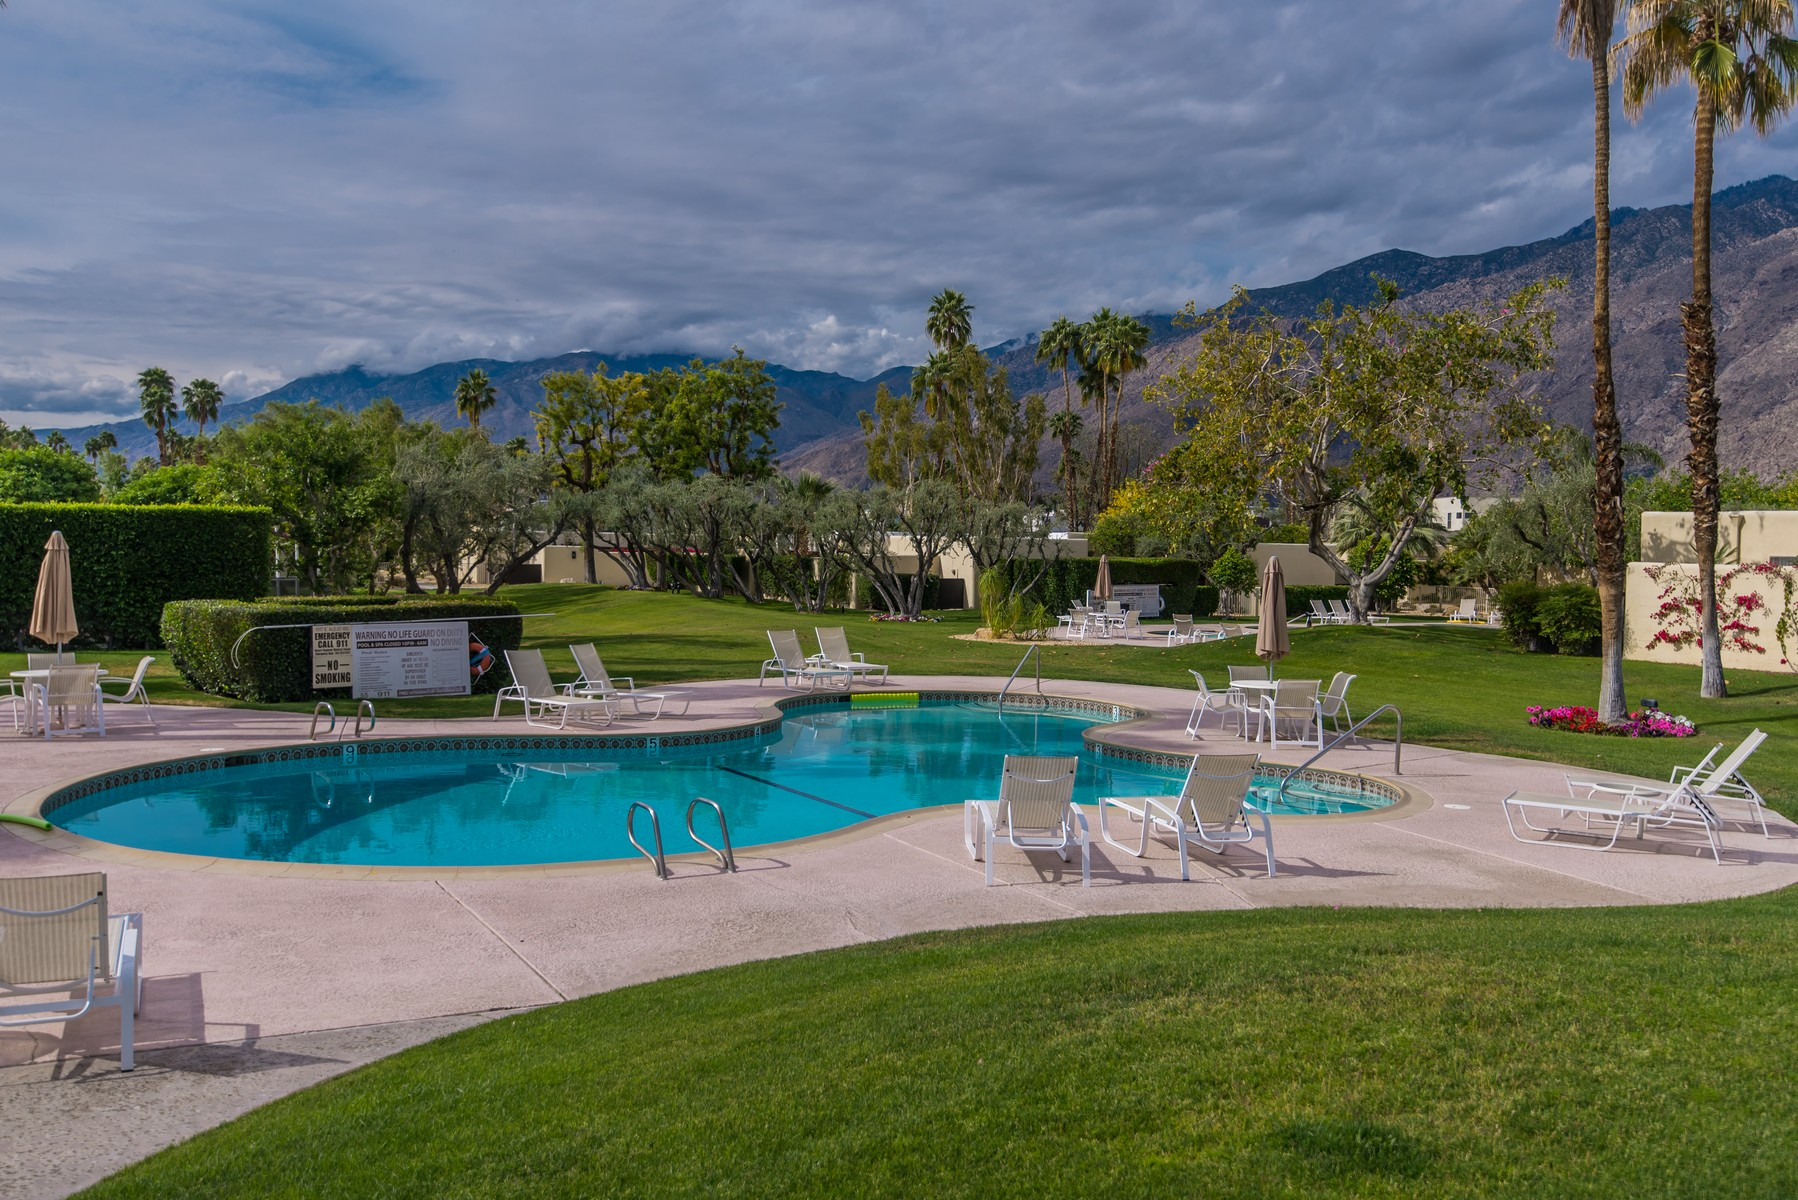 Condominium for Sale at 1183 Alejo Road 1183 East Alejo Road Palm Springs, California, 92262 United States